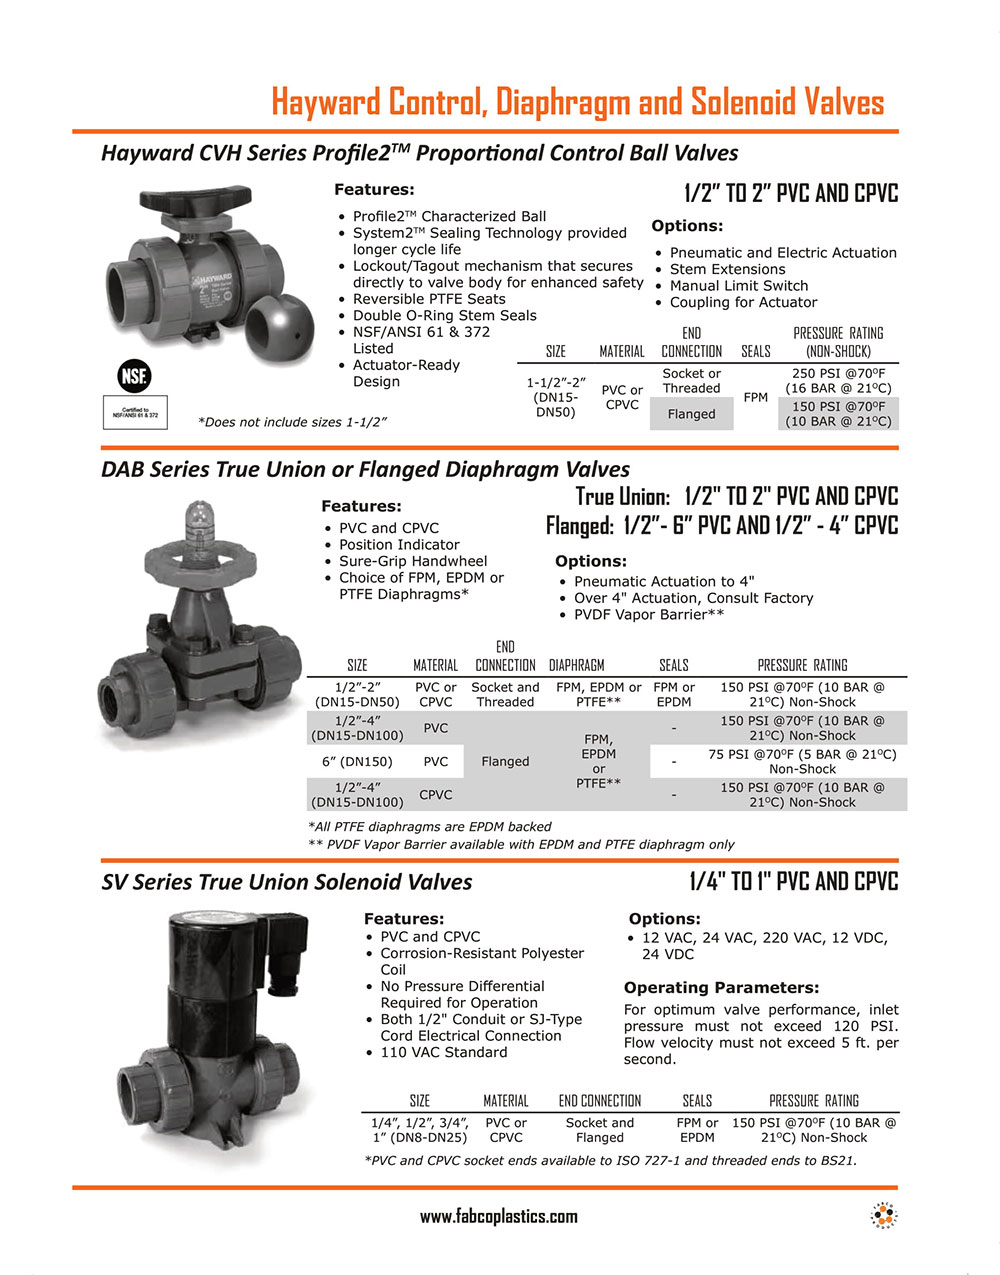 Hayward Diaphragm and Solenoid Valves